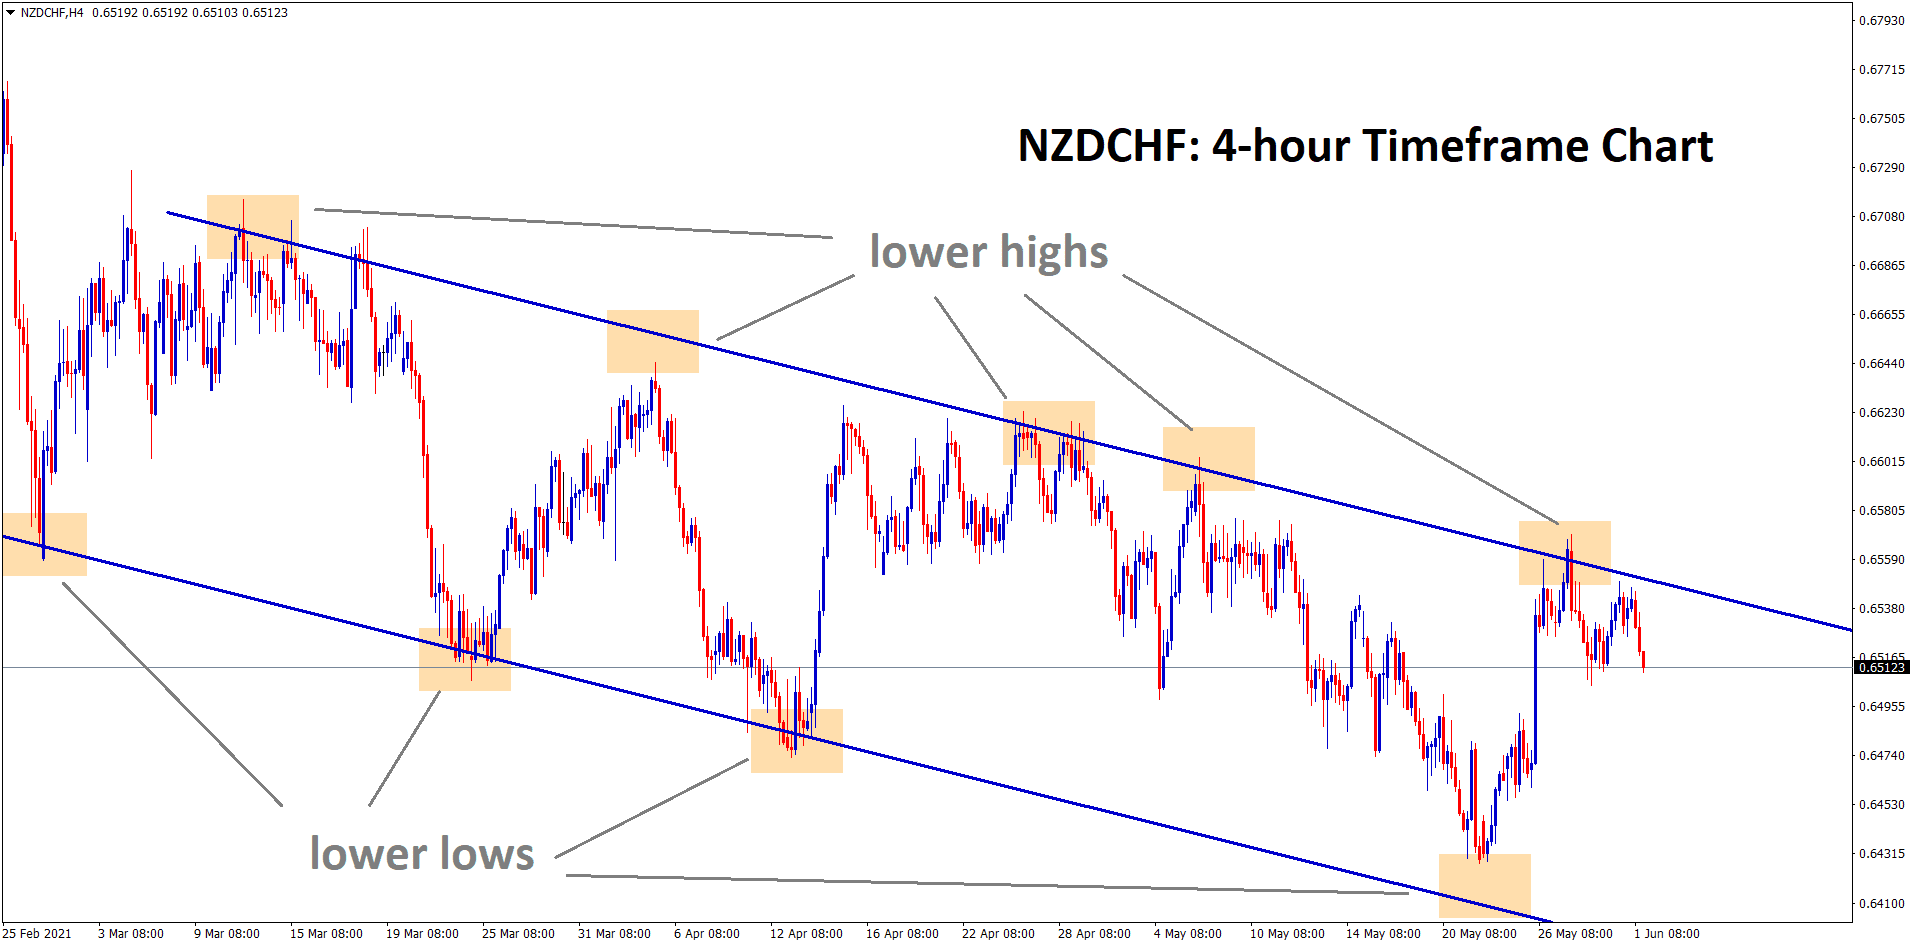 nzdchf falling from the lower high level of a descending channel